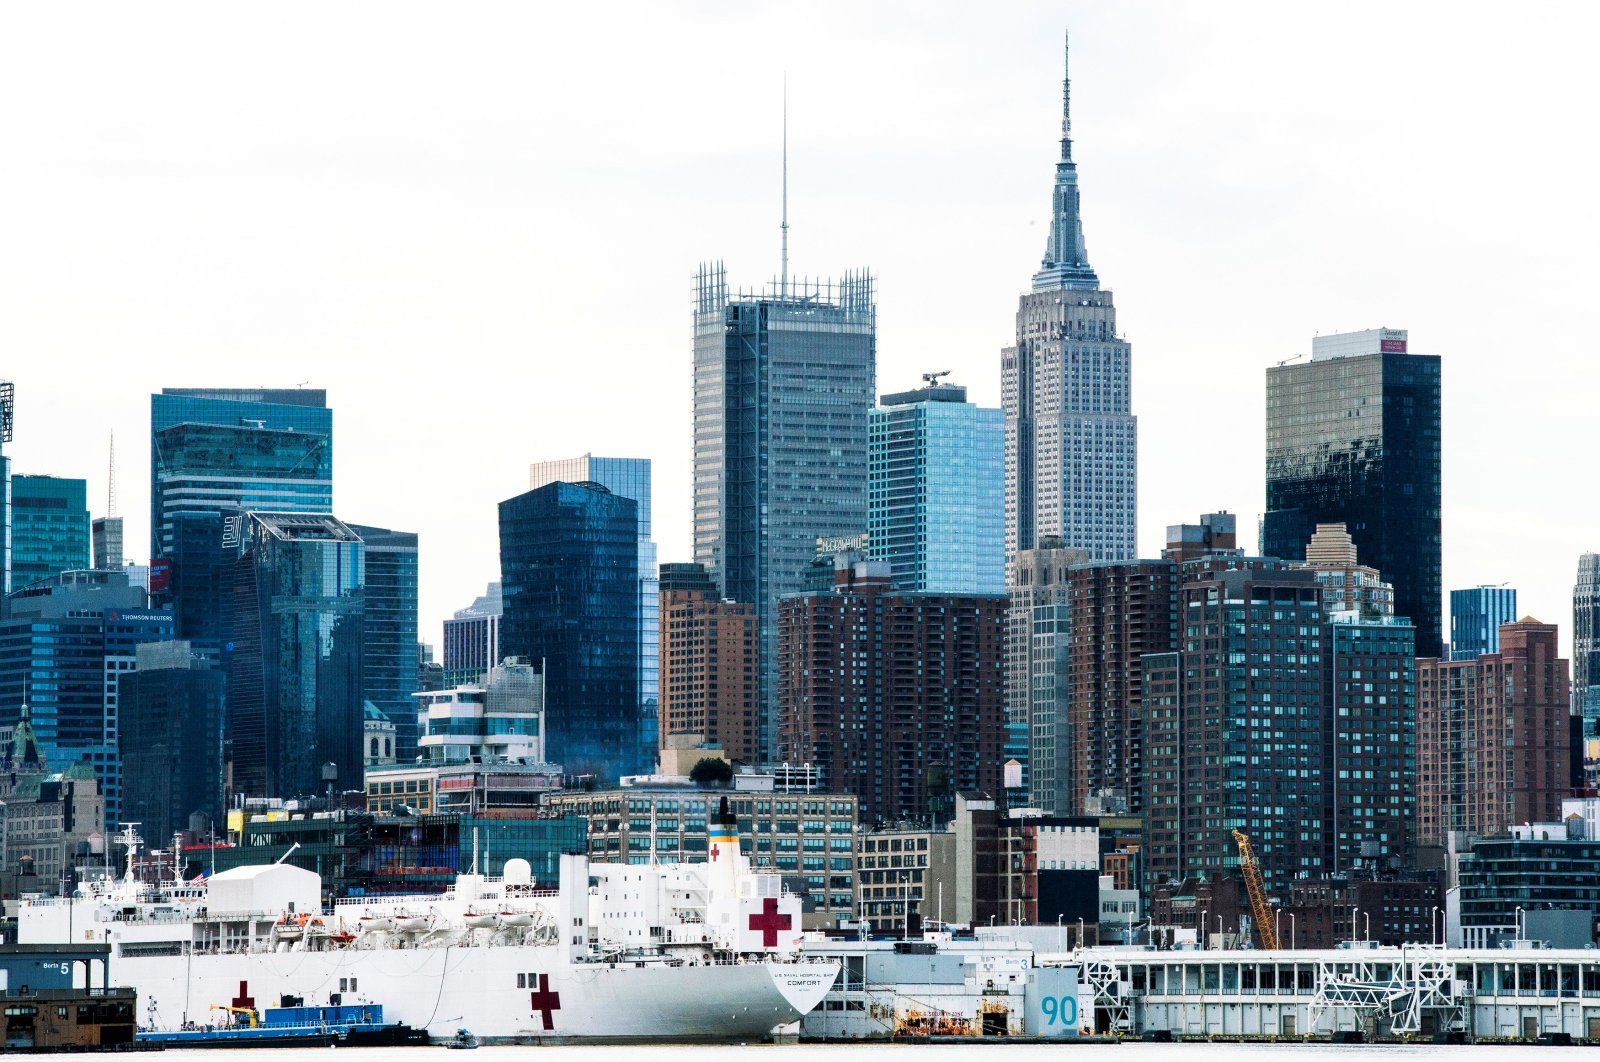 The USNS Comfort, a naval hospital ship with a 1,000 bed-capacity, seen docked at Pier 90 in New York, April 7, 2020. (Reuters Photo)